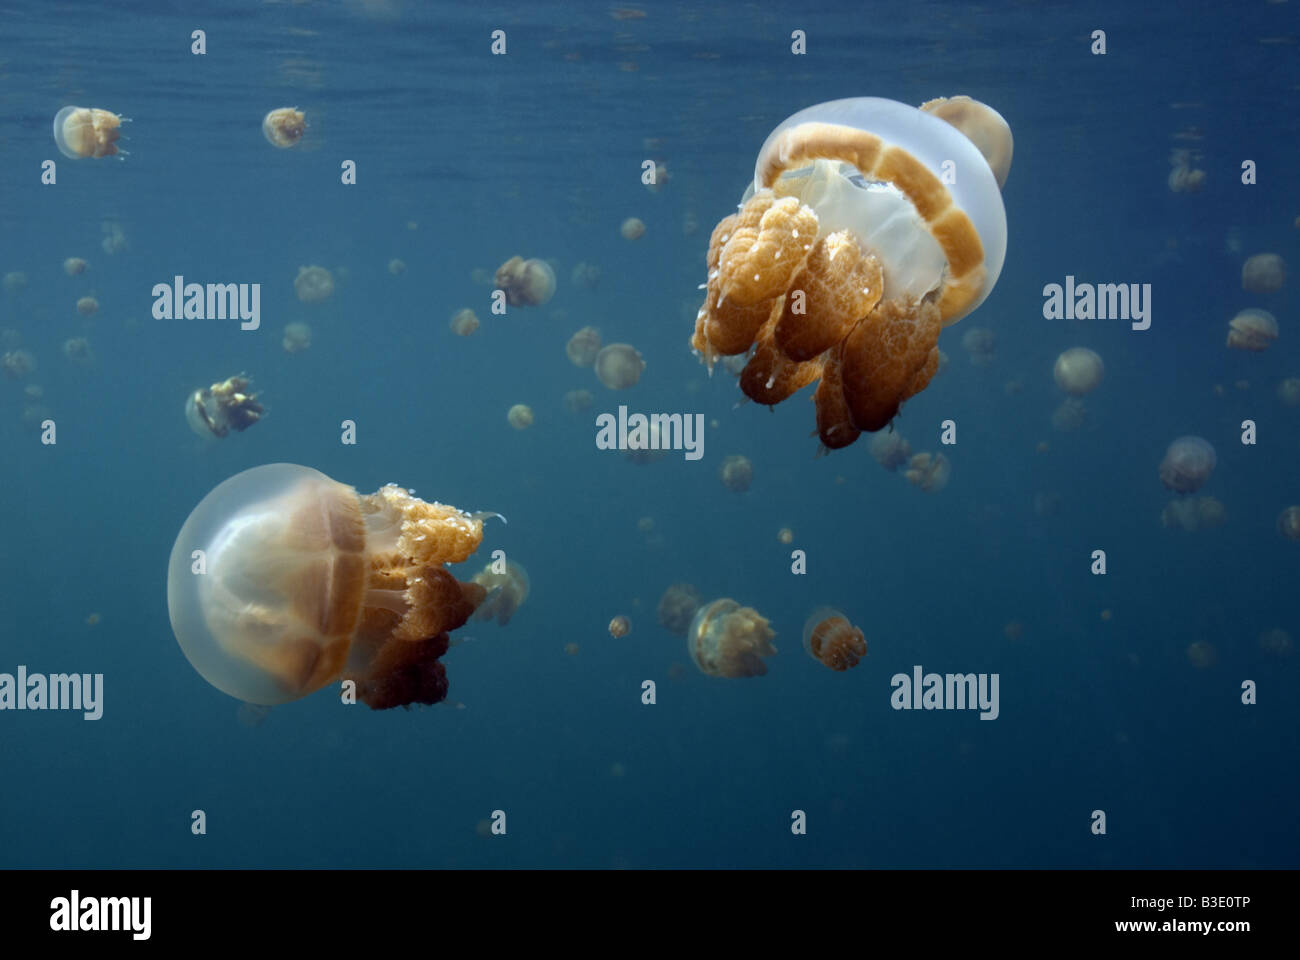 School of non stinging Jellyfish near the surface in lake